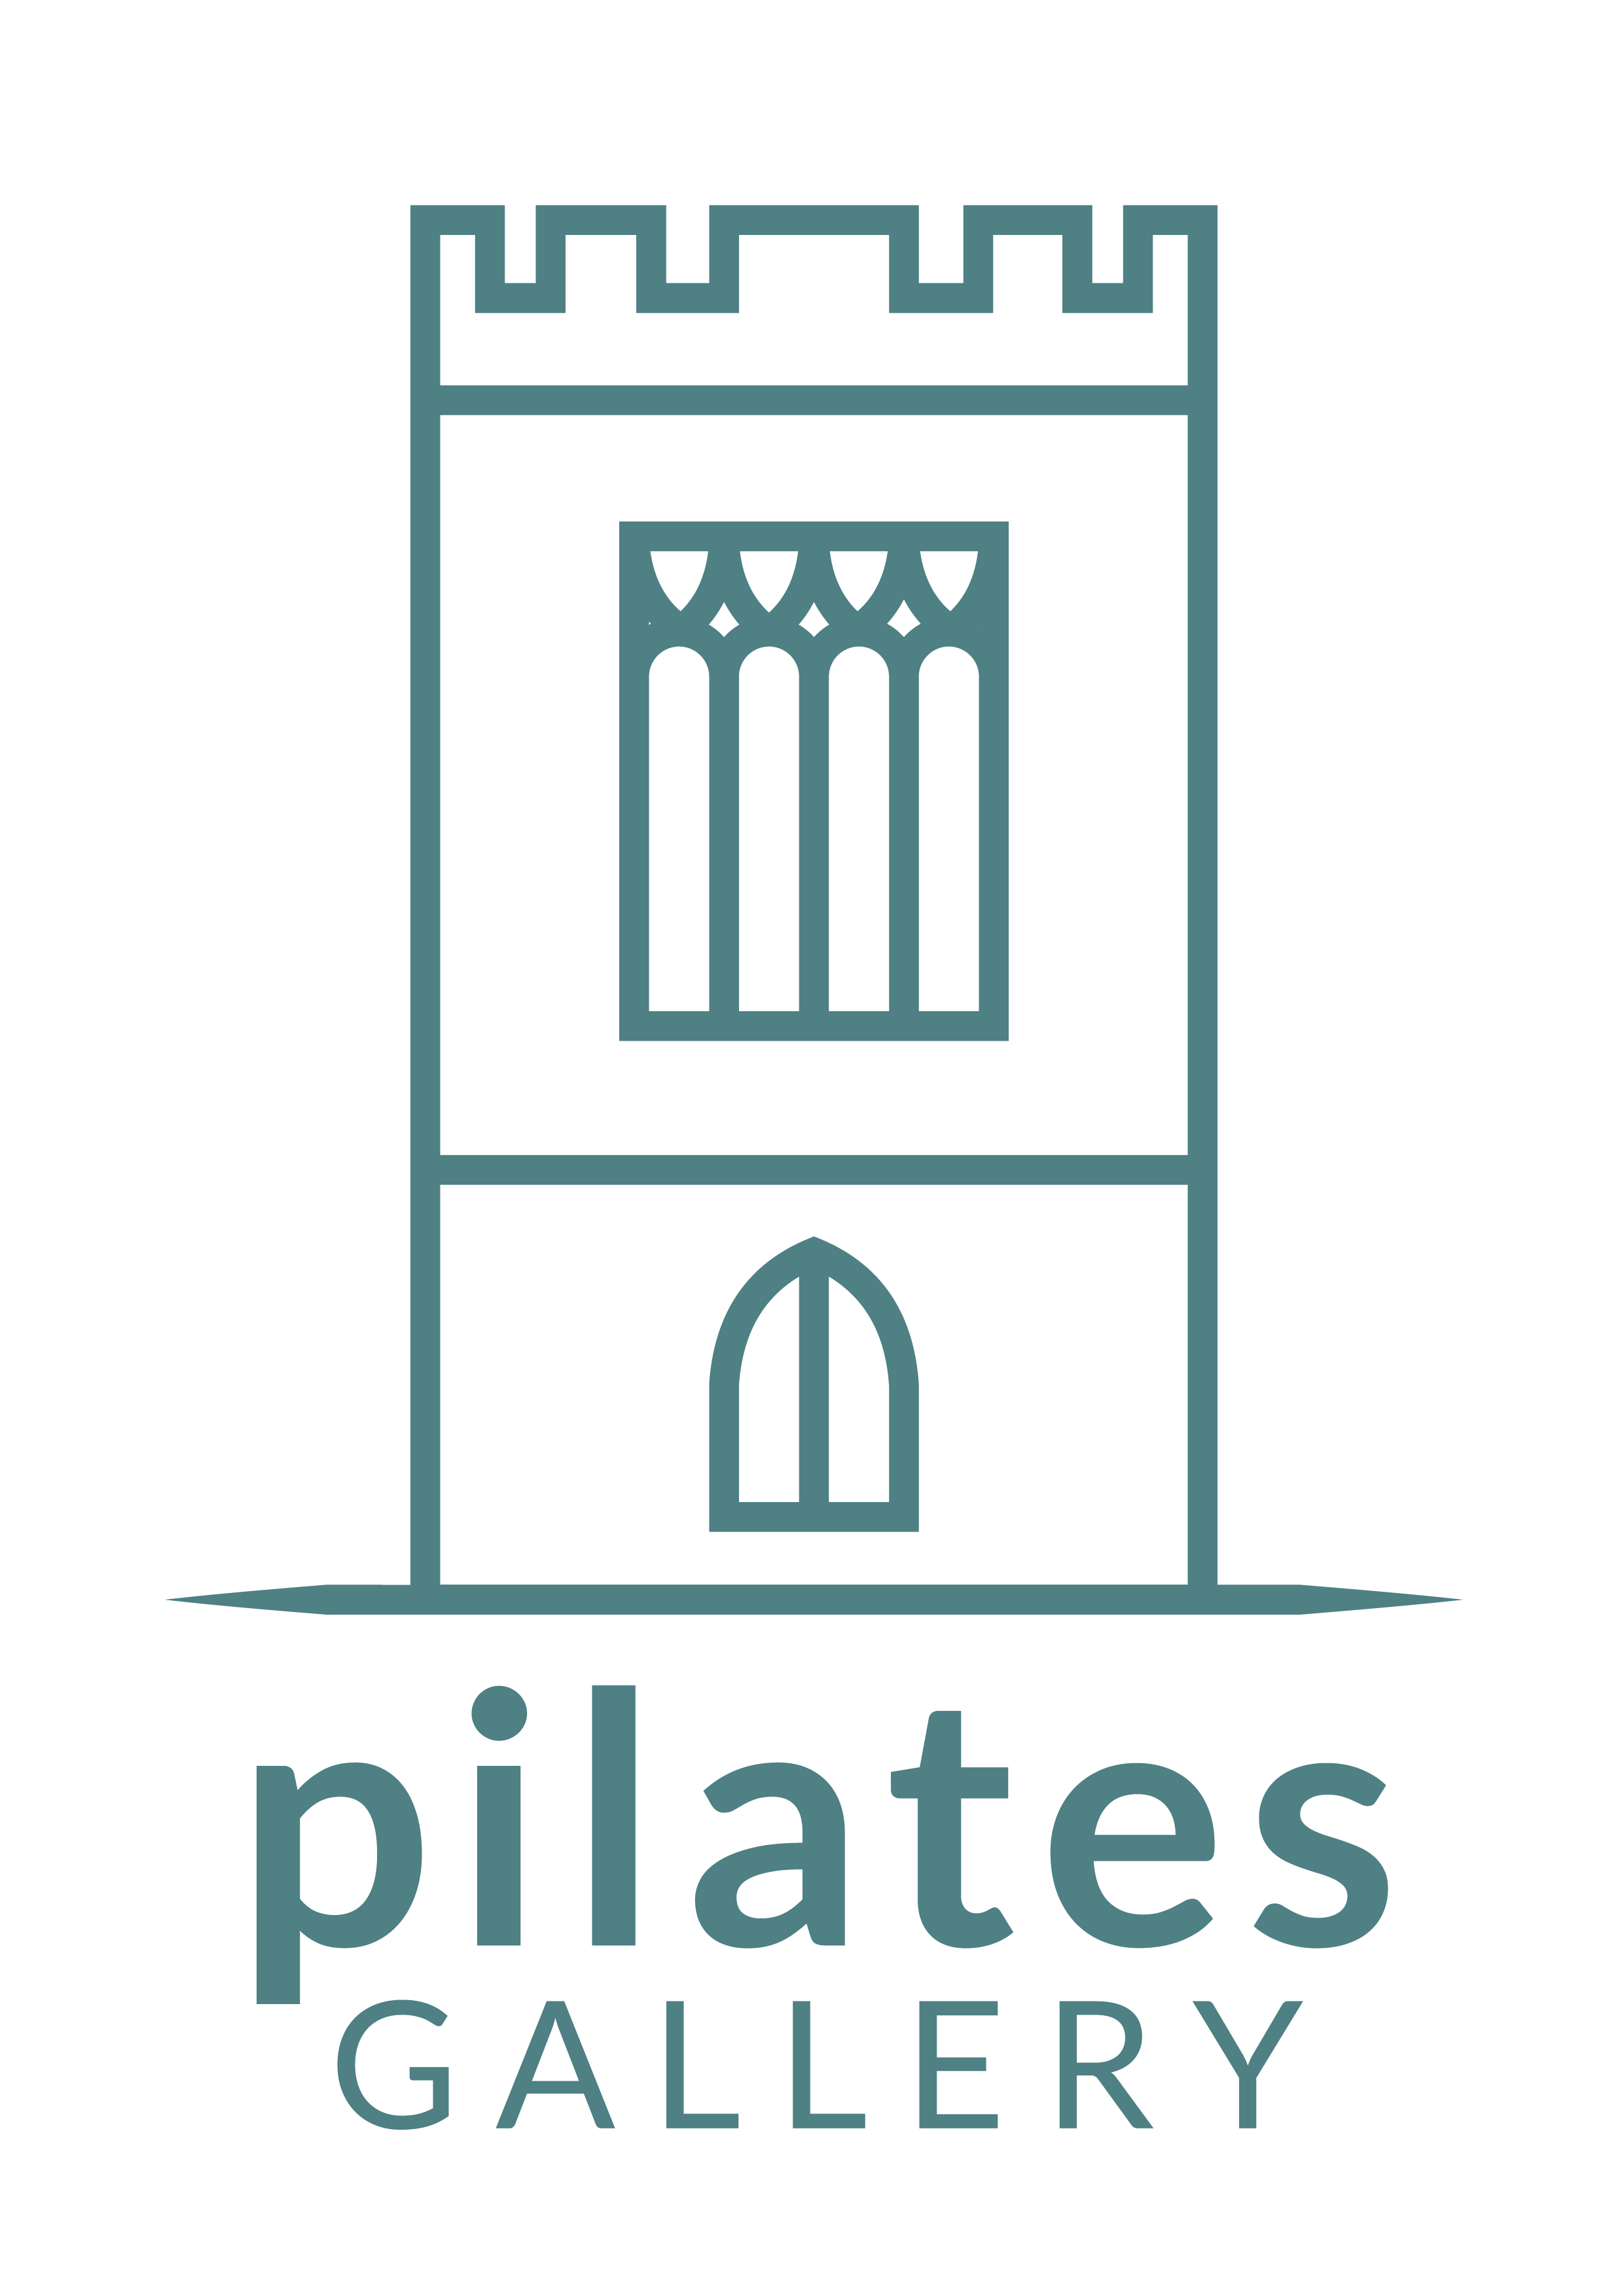 Pilates Gallery logo